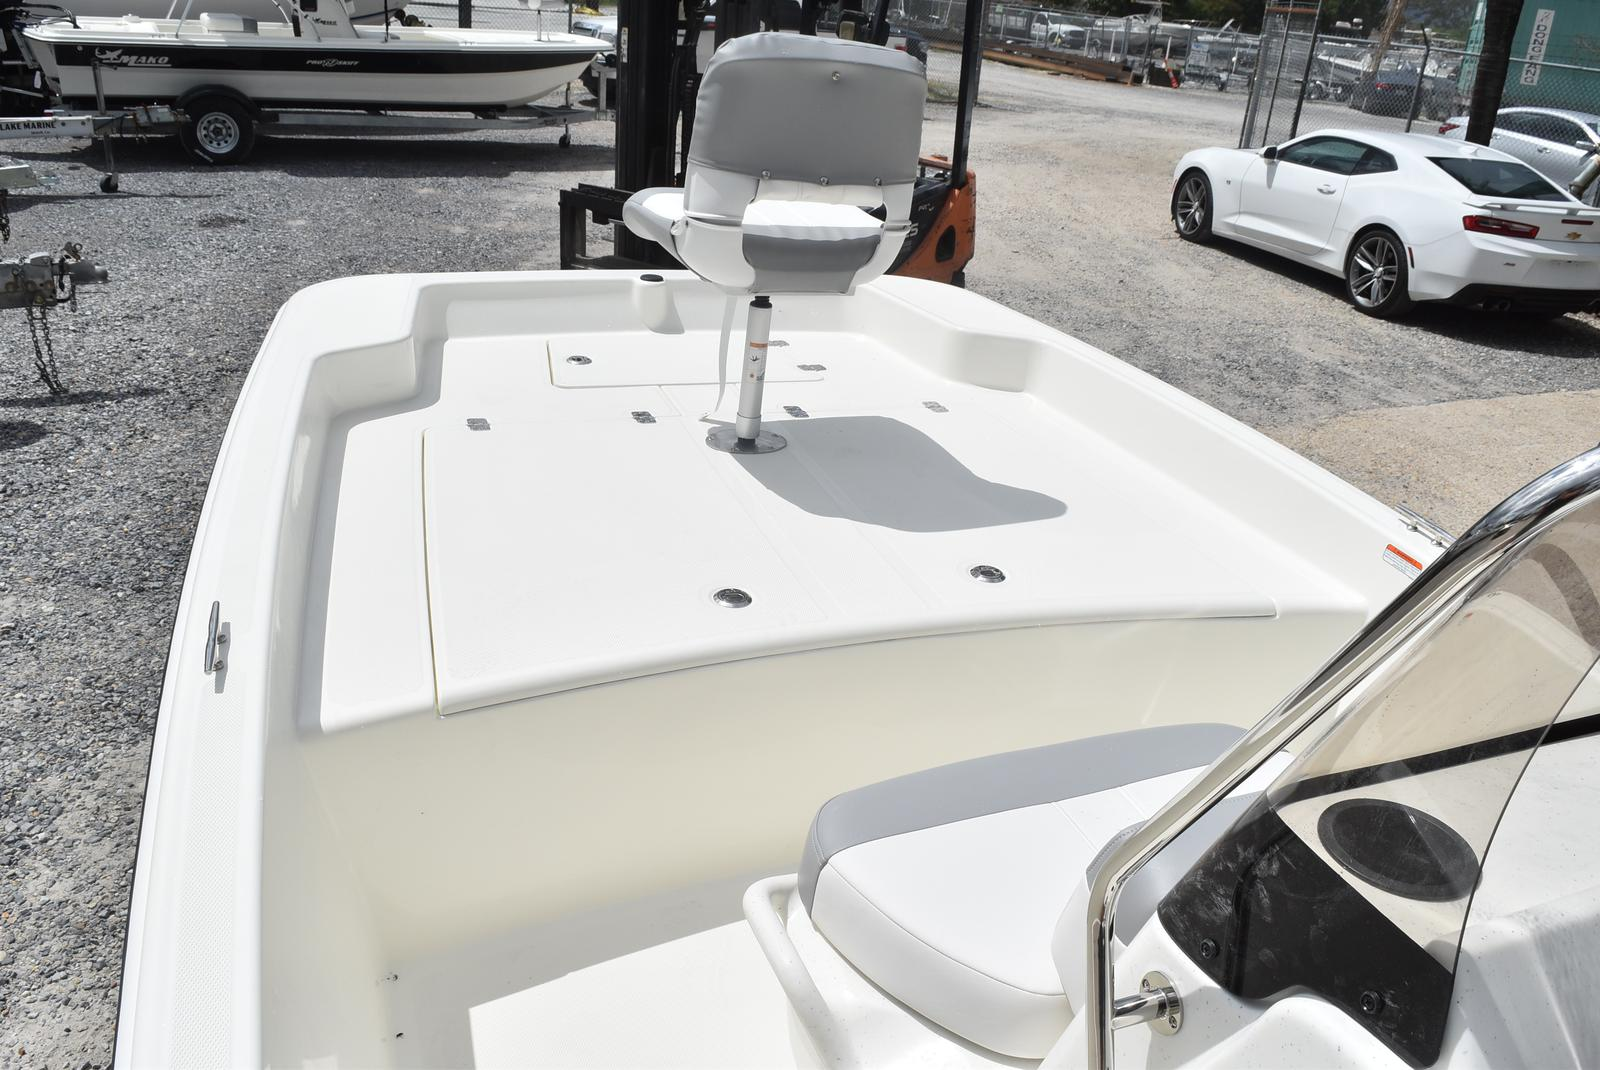 2020 Mako boat for sale, model of the boat is Pro Skiff 17, 75 ELPT & Image # 454 of 702